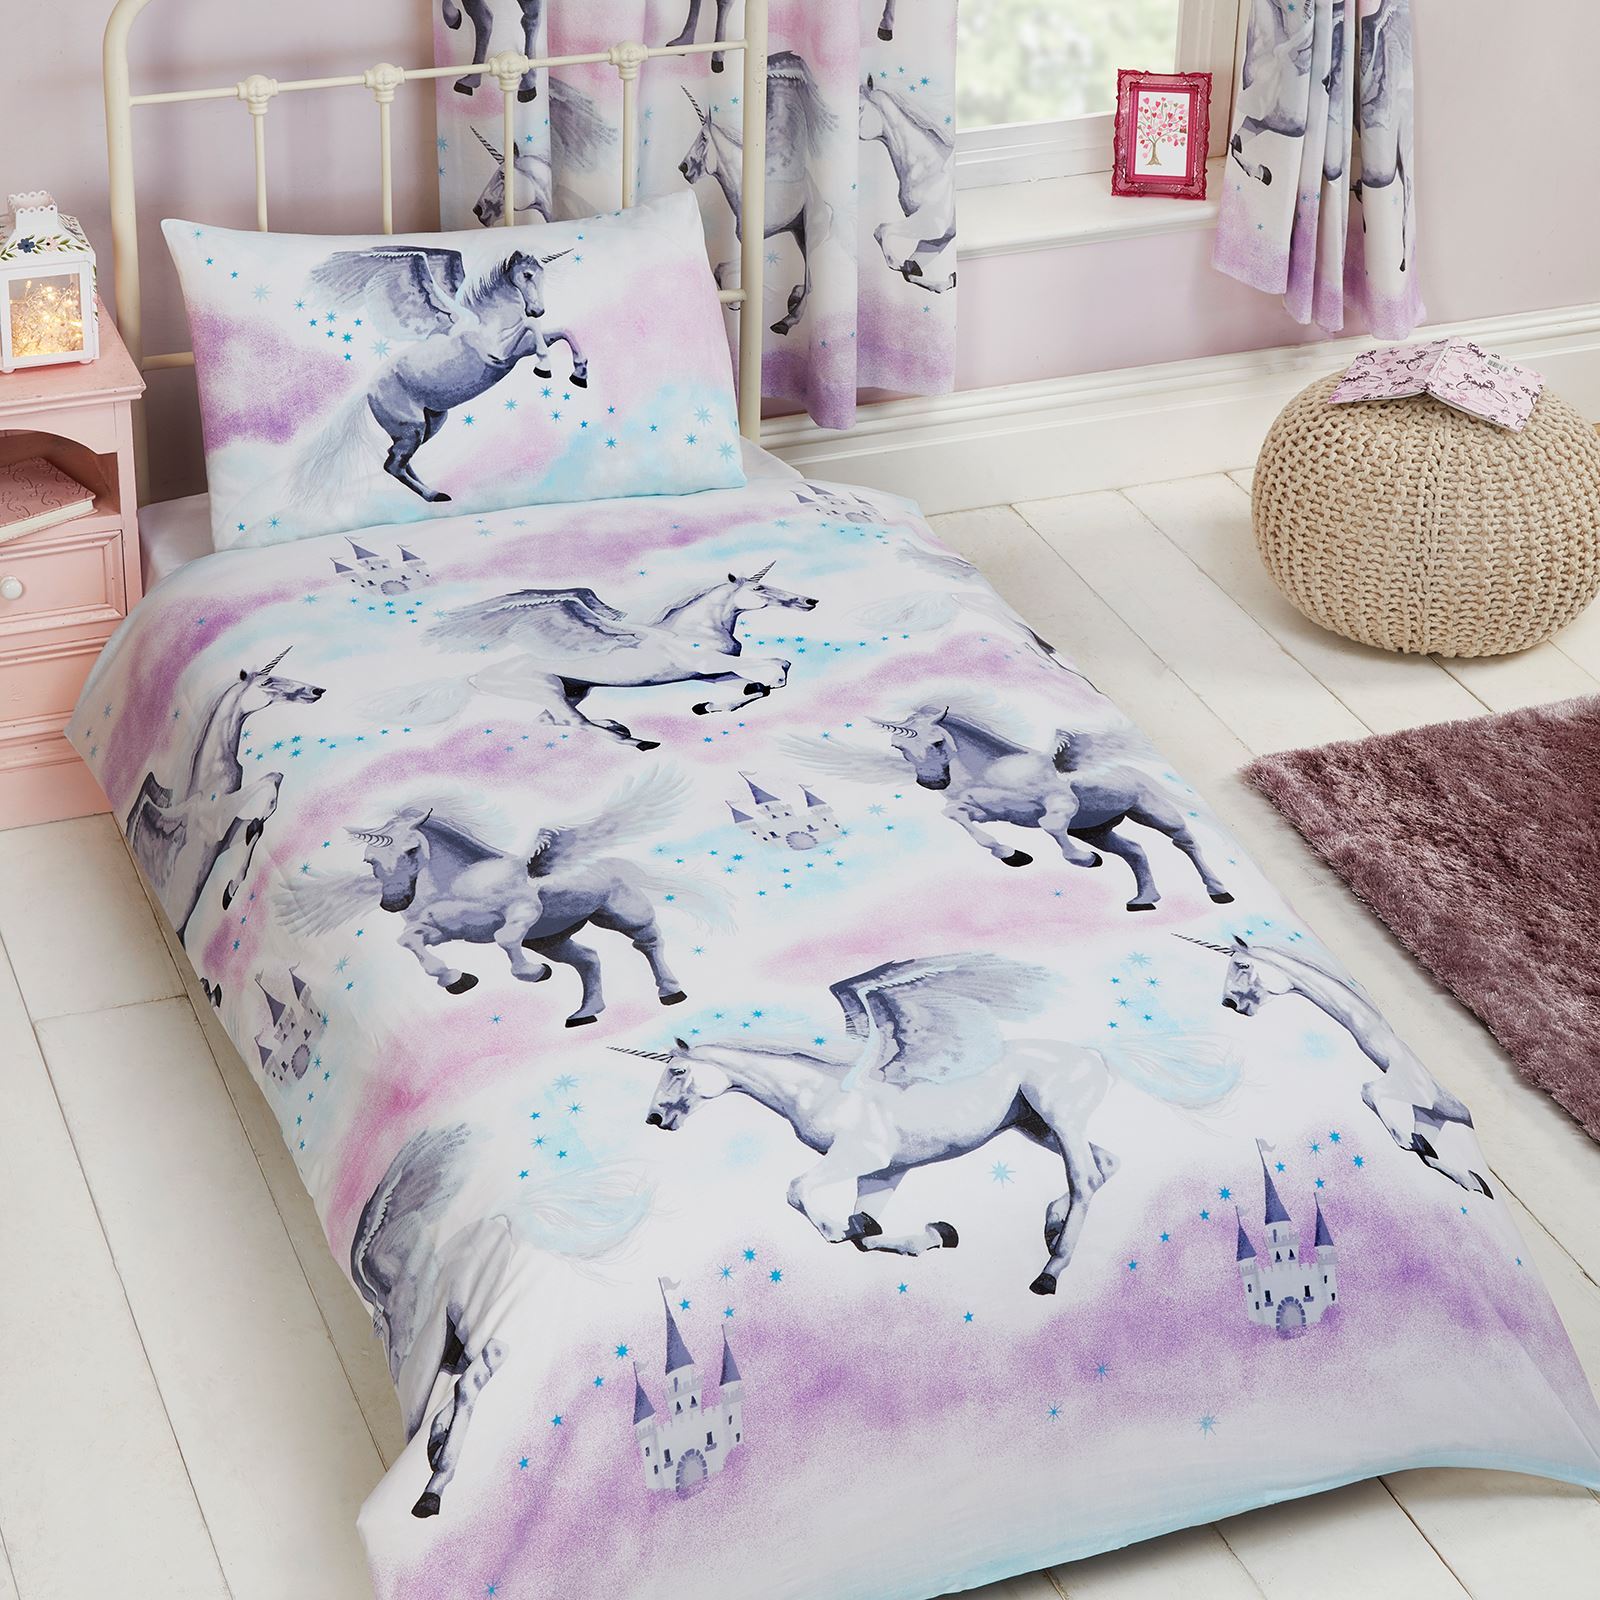 kids single duvet cover sets boys girls bedding unicorn. Black Bedroom Furniture Sets. Home Design Ideas